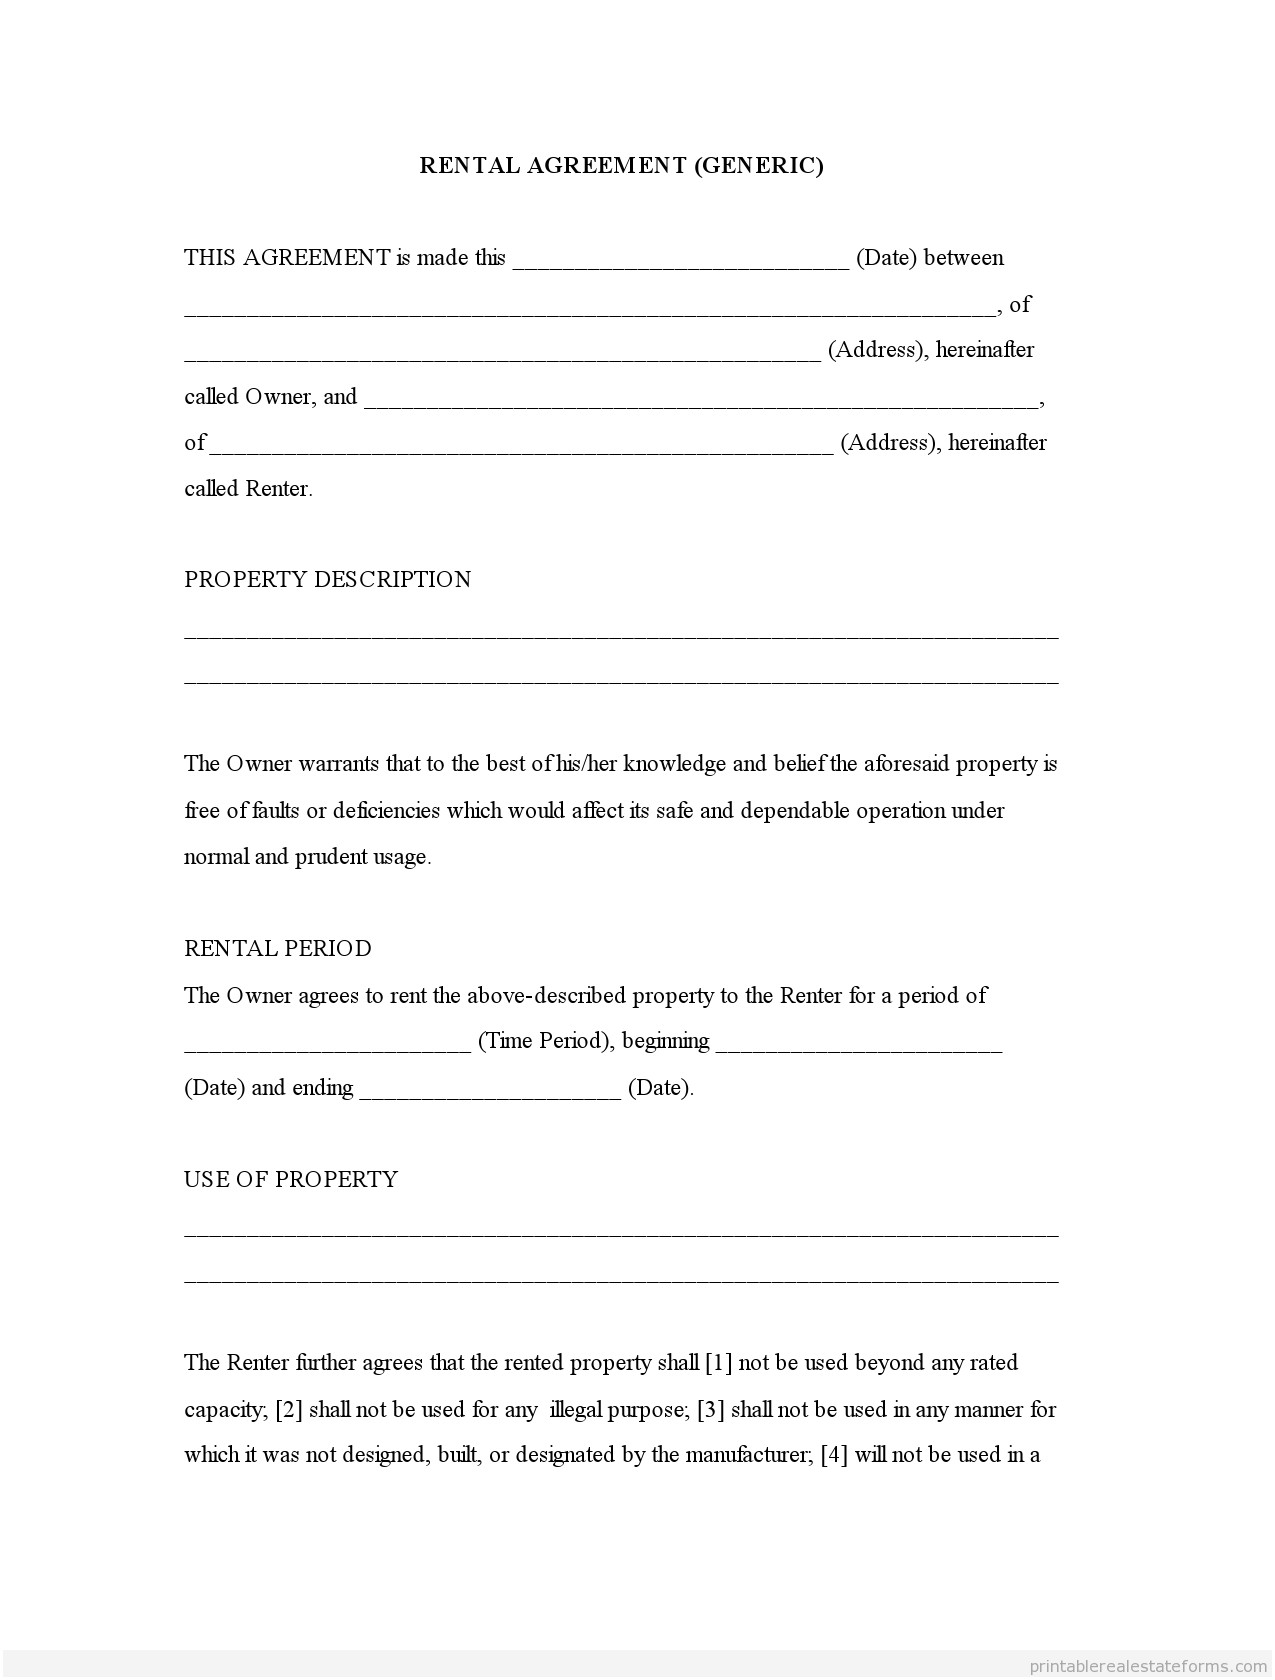 Renters Rental Agreement Form